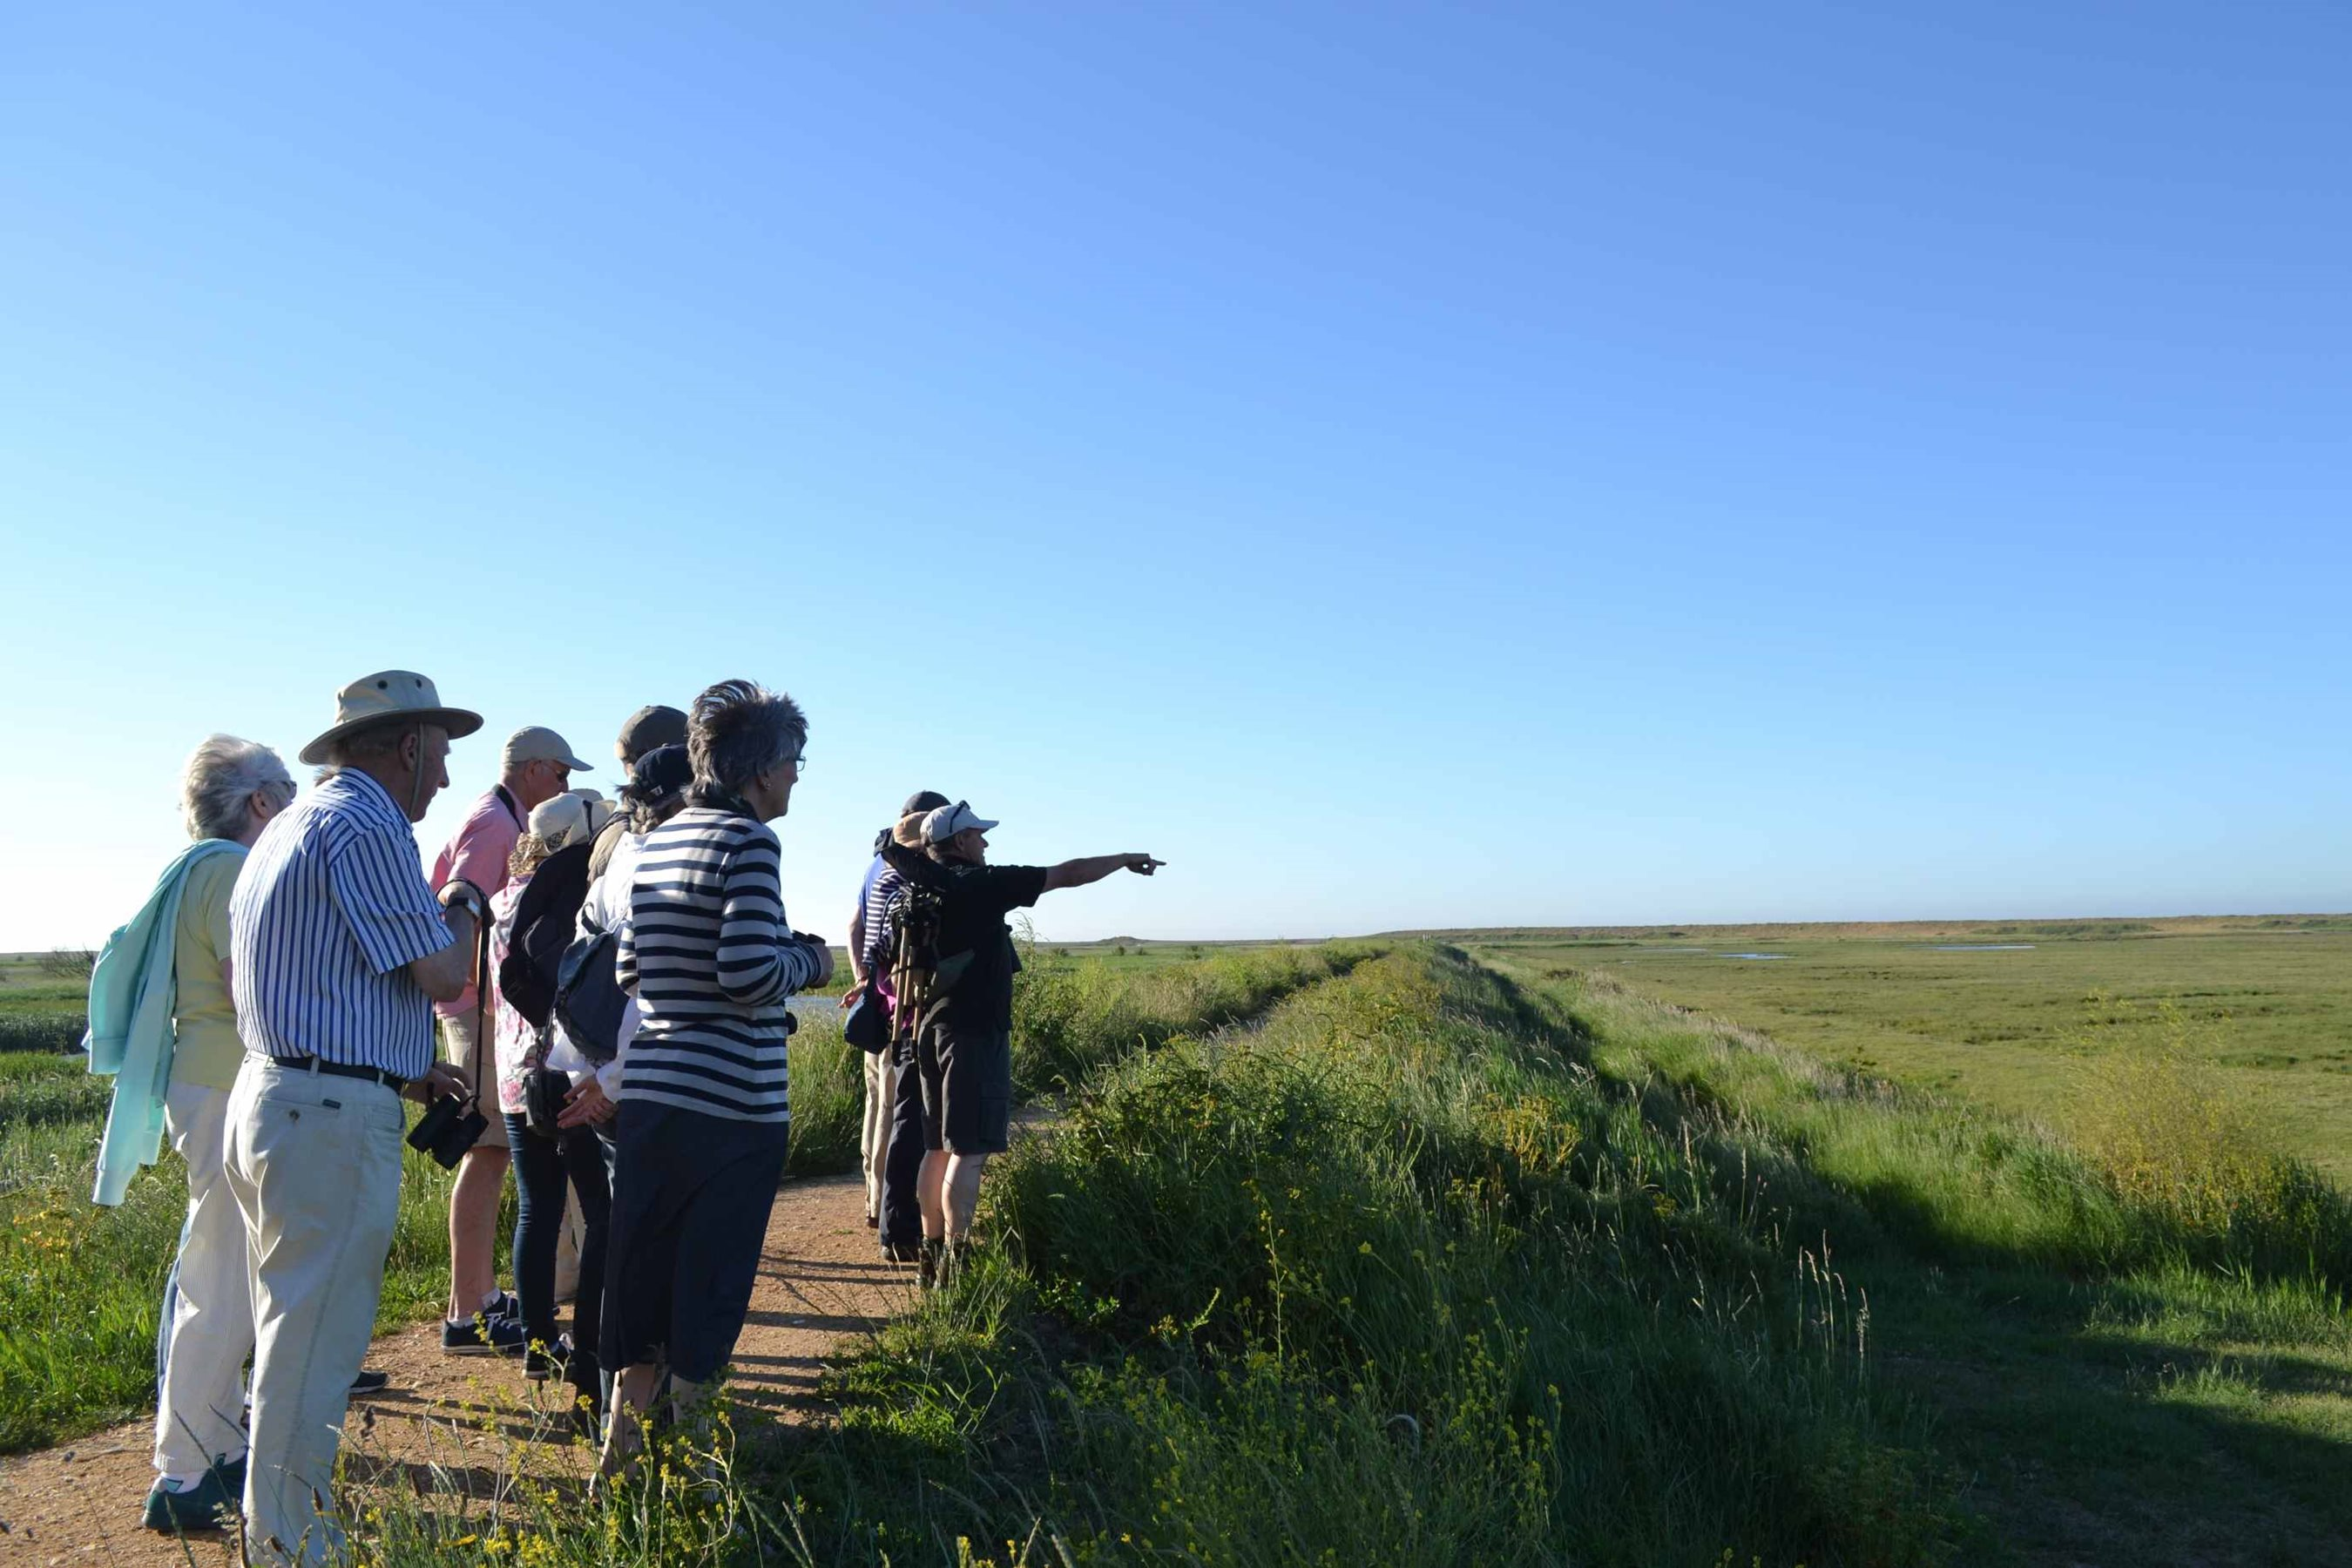 Circuit of Cley | A guided circuit walk around the reserve  | NWT Cley Marshes NR25 7SA